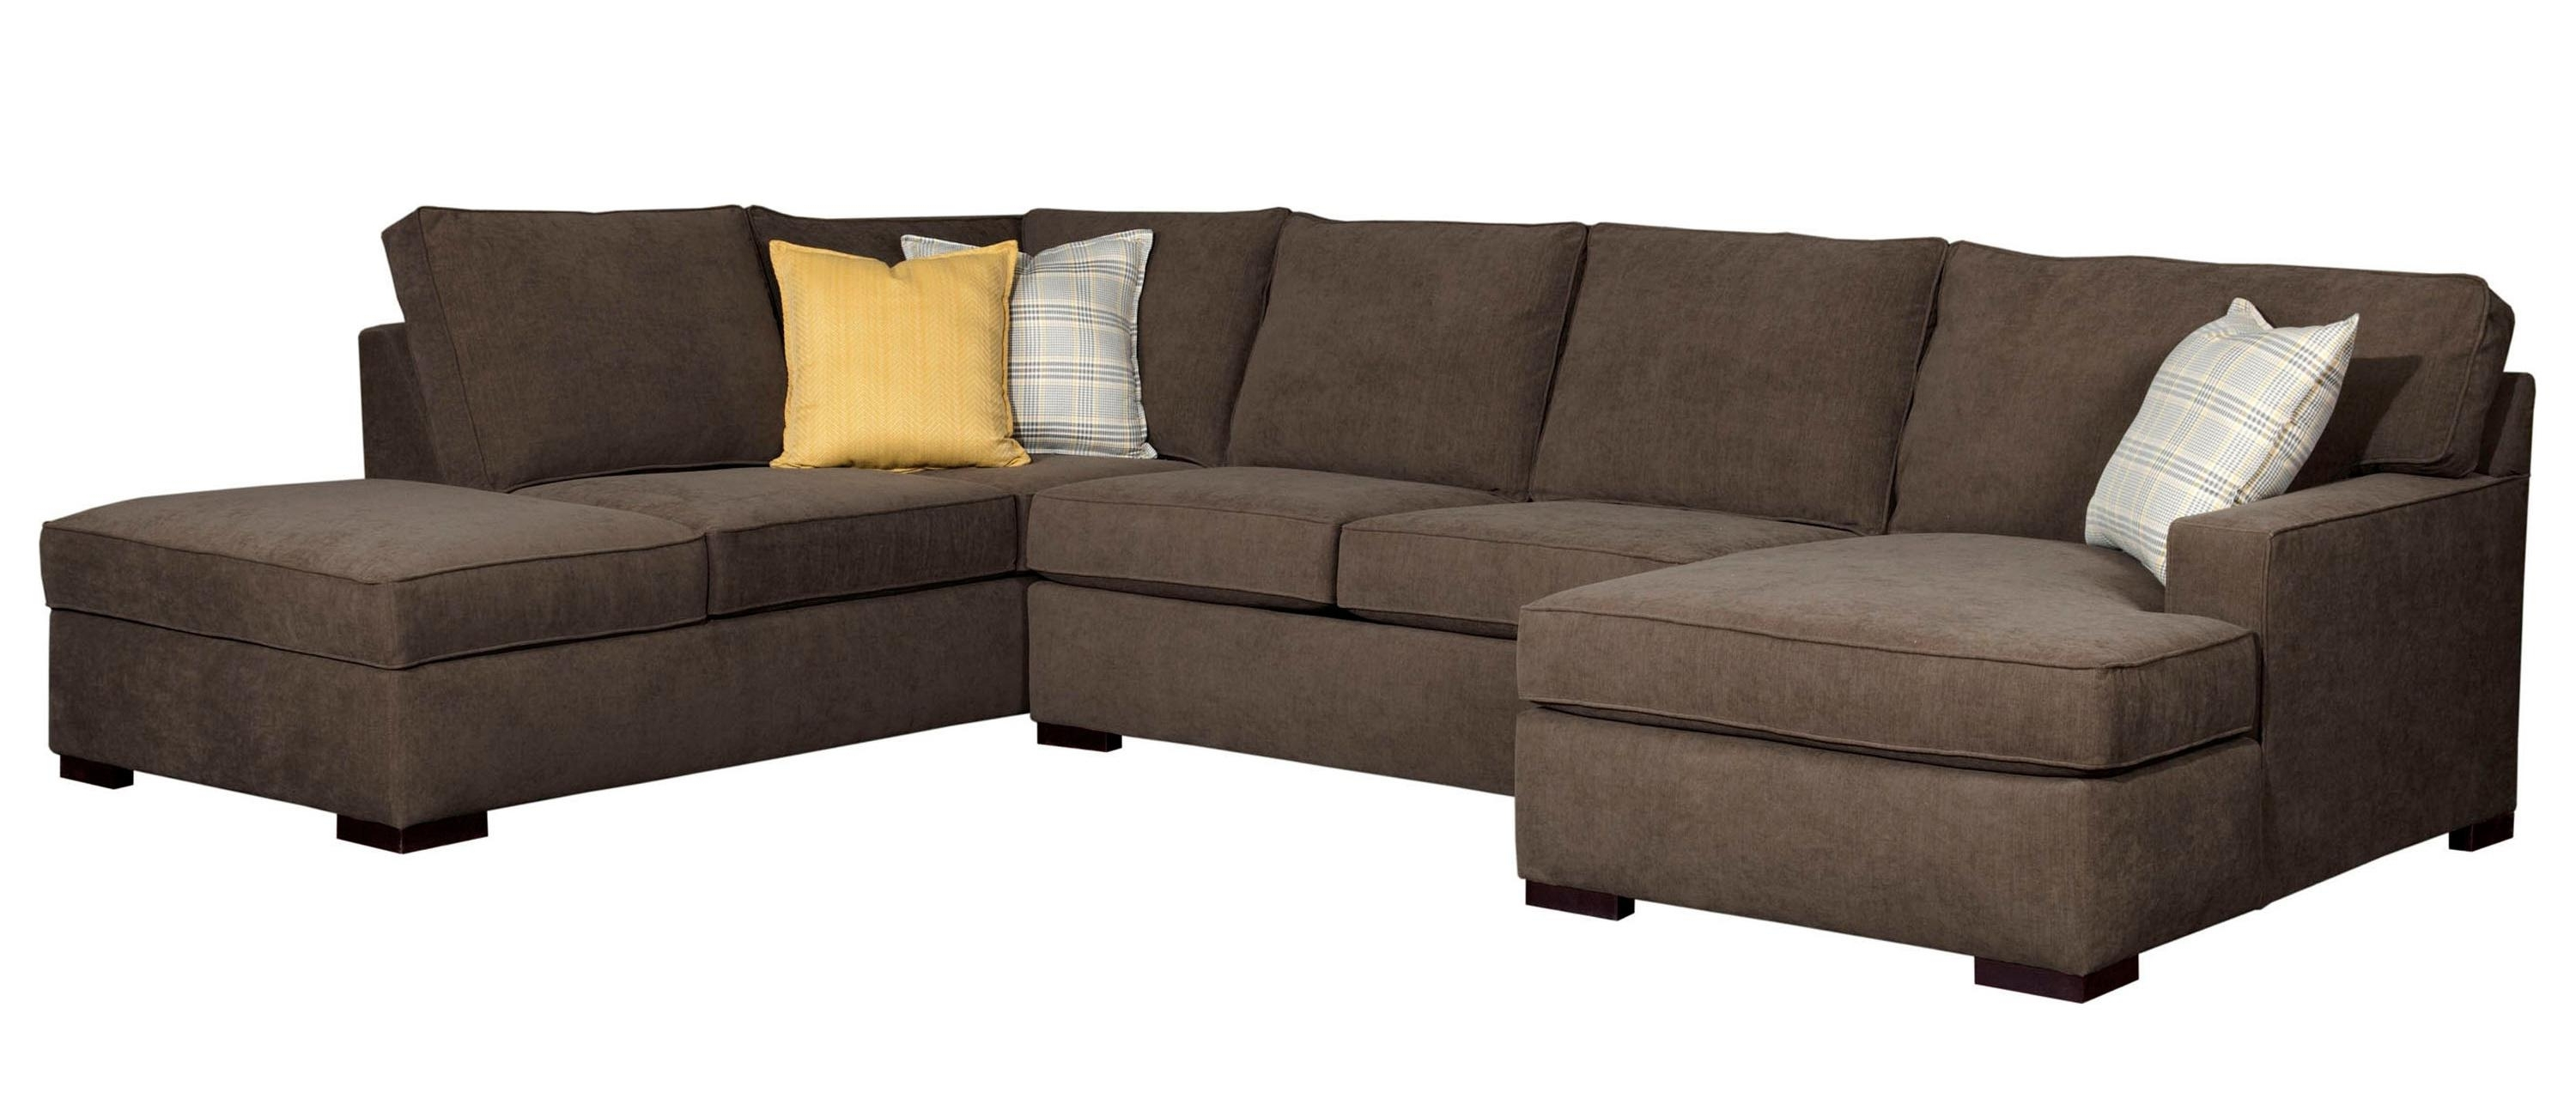 Trendy Sofa Mart Sectional With El Paso Texas Sectional Sofas (View 16 of 20)